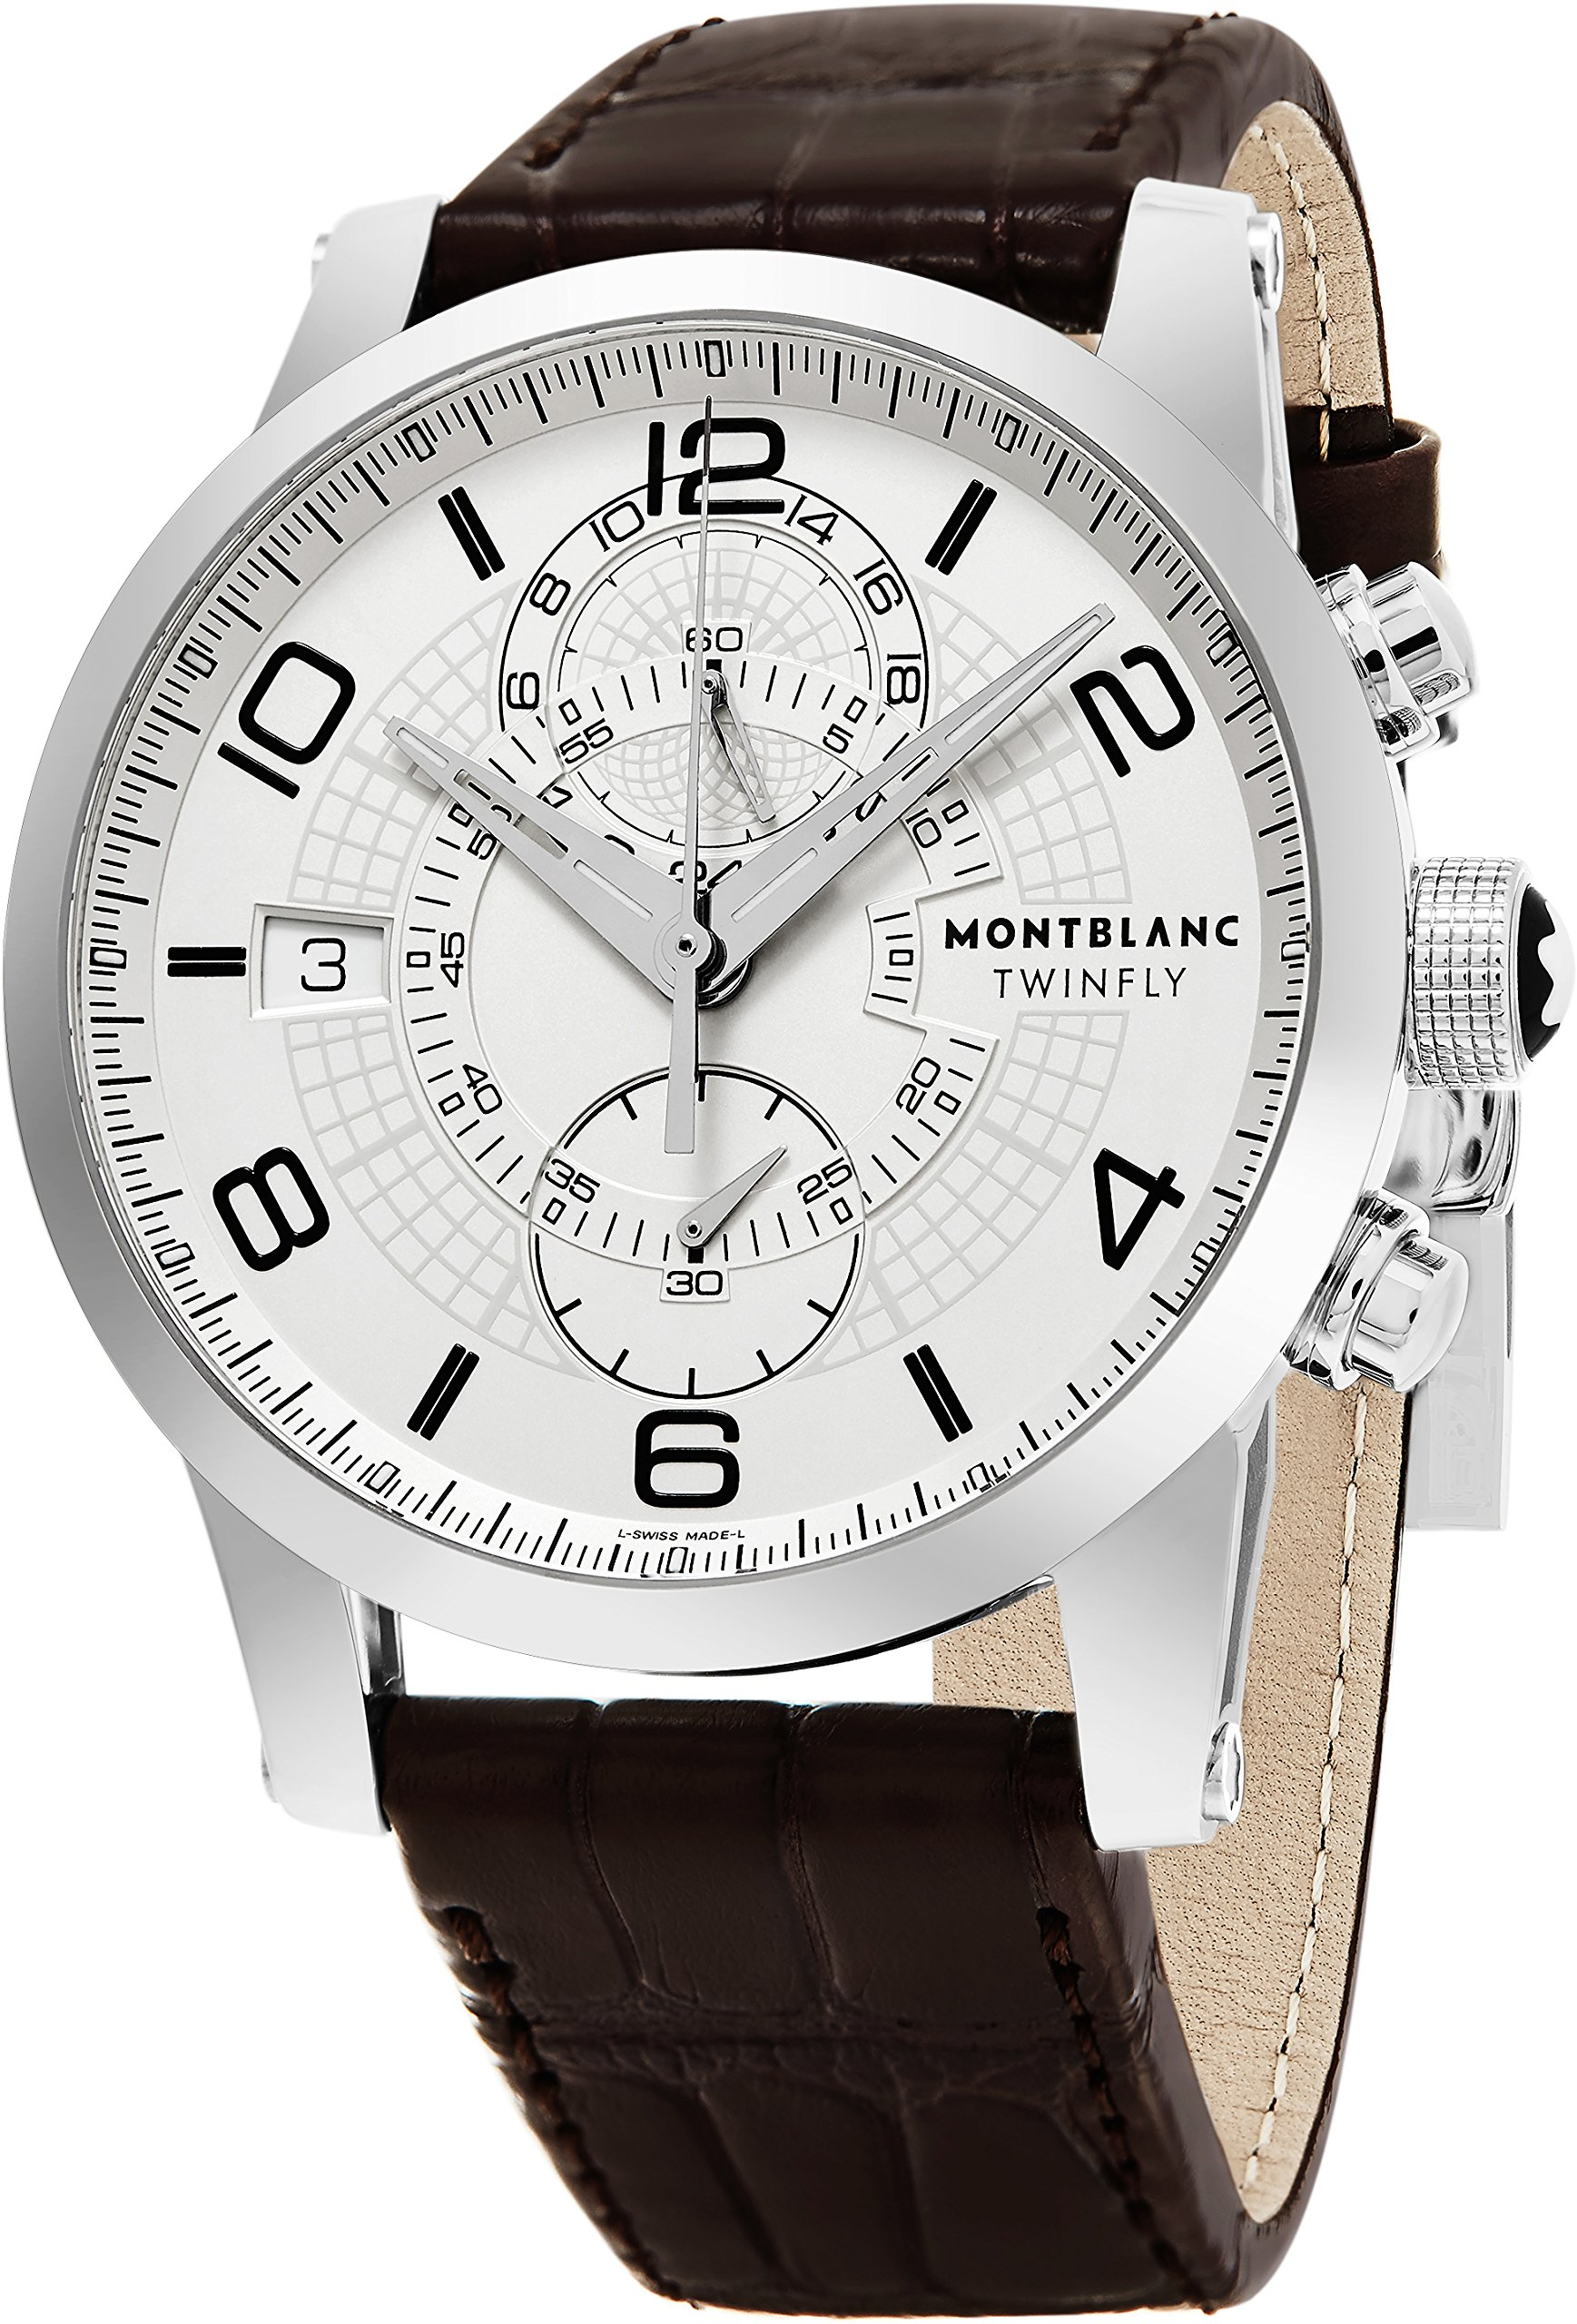 Montblanc Timewalker Twinfly Chronograph White Dial Brown Leather Mens Watch 109134 by MONTBLANC